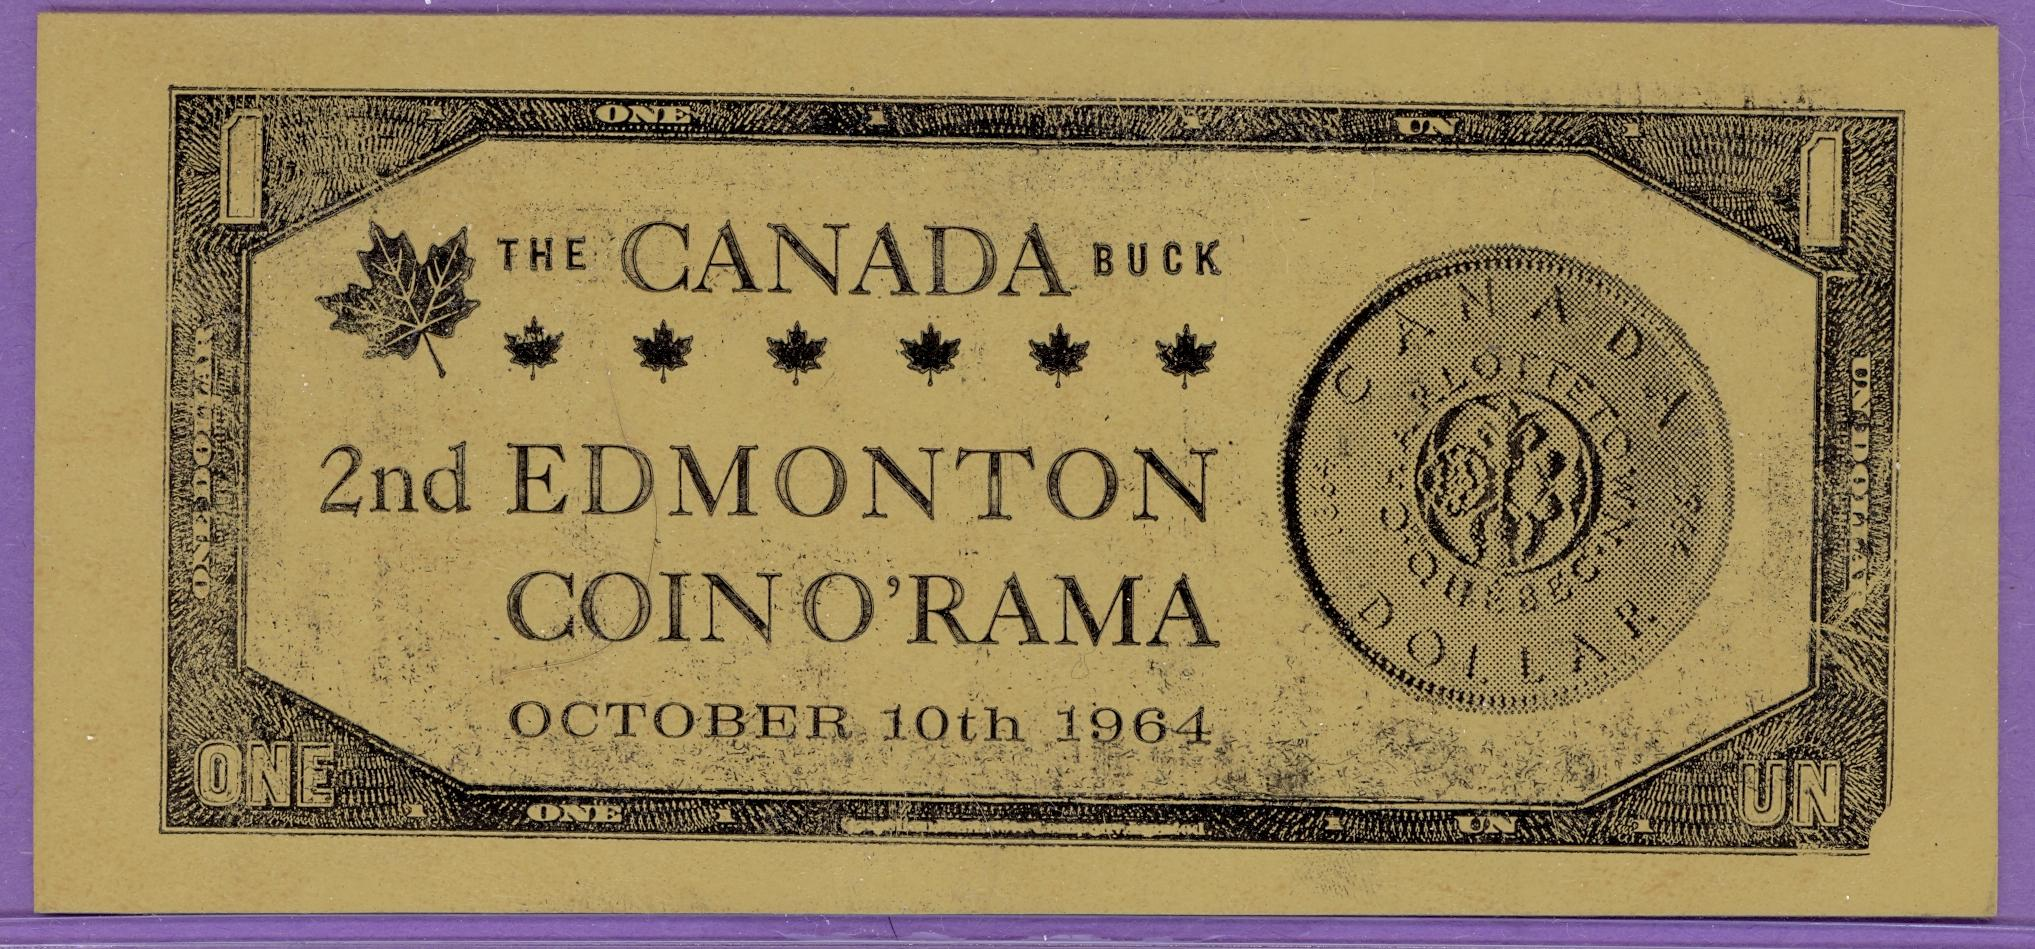 1964 Edmonton Alberta 2nd Coin O'Rama LEATHER Trade Note